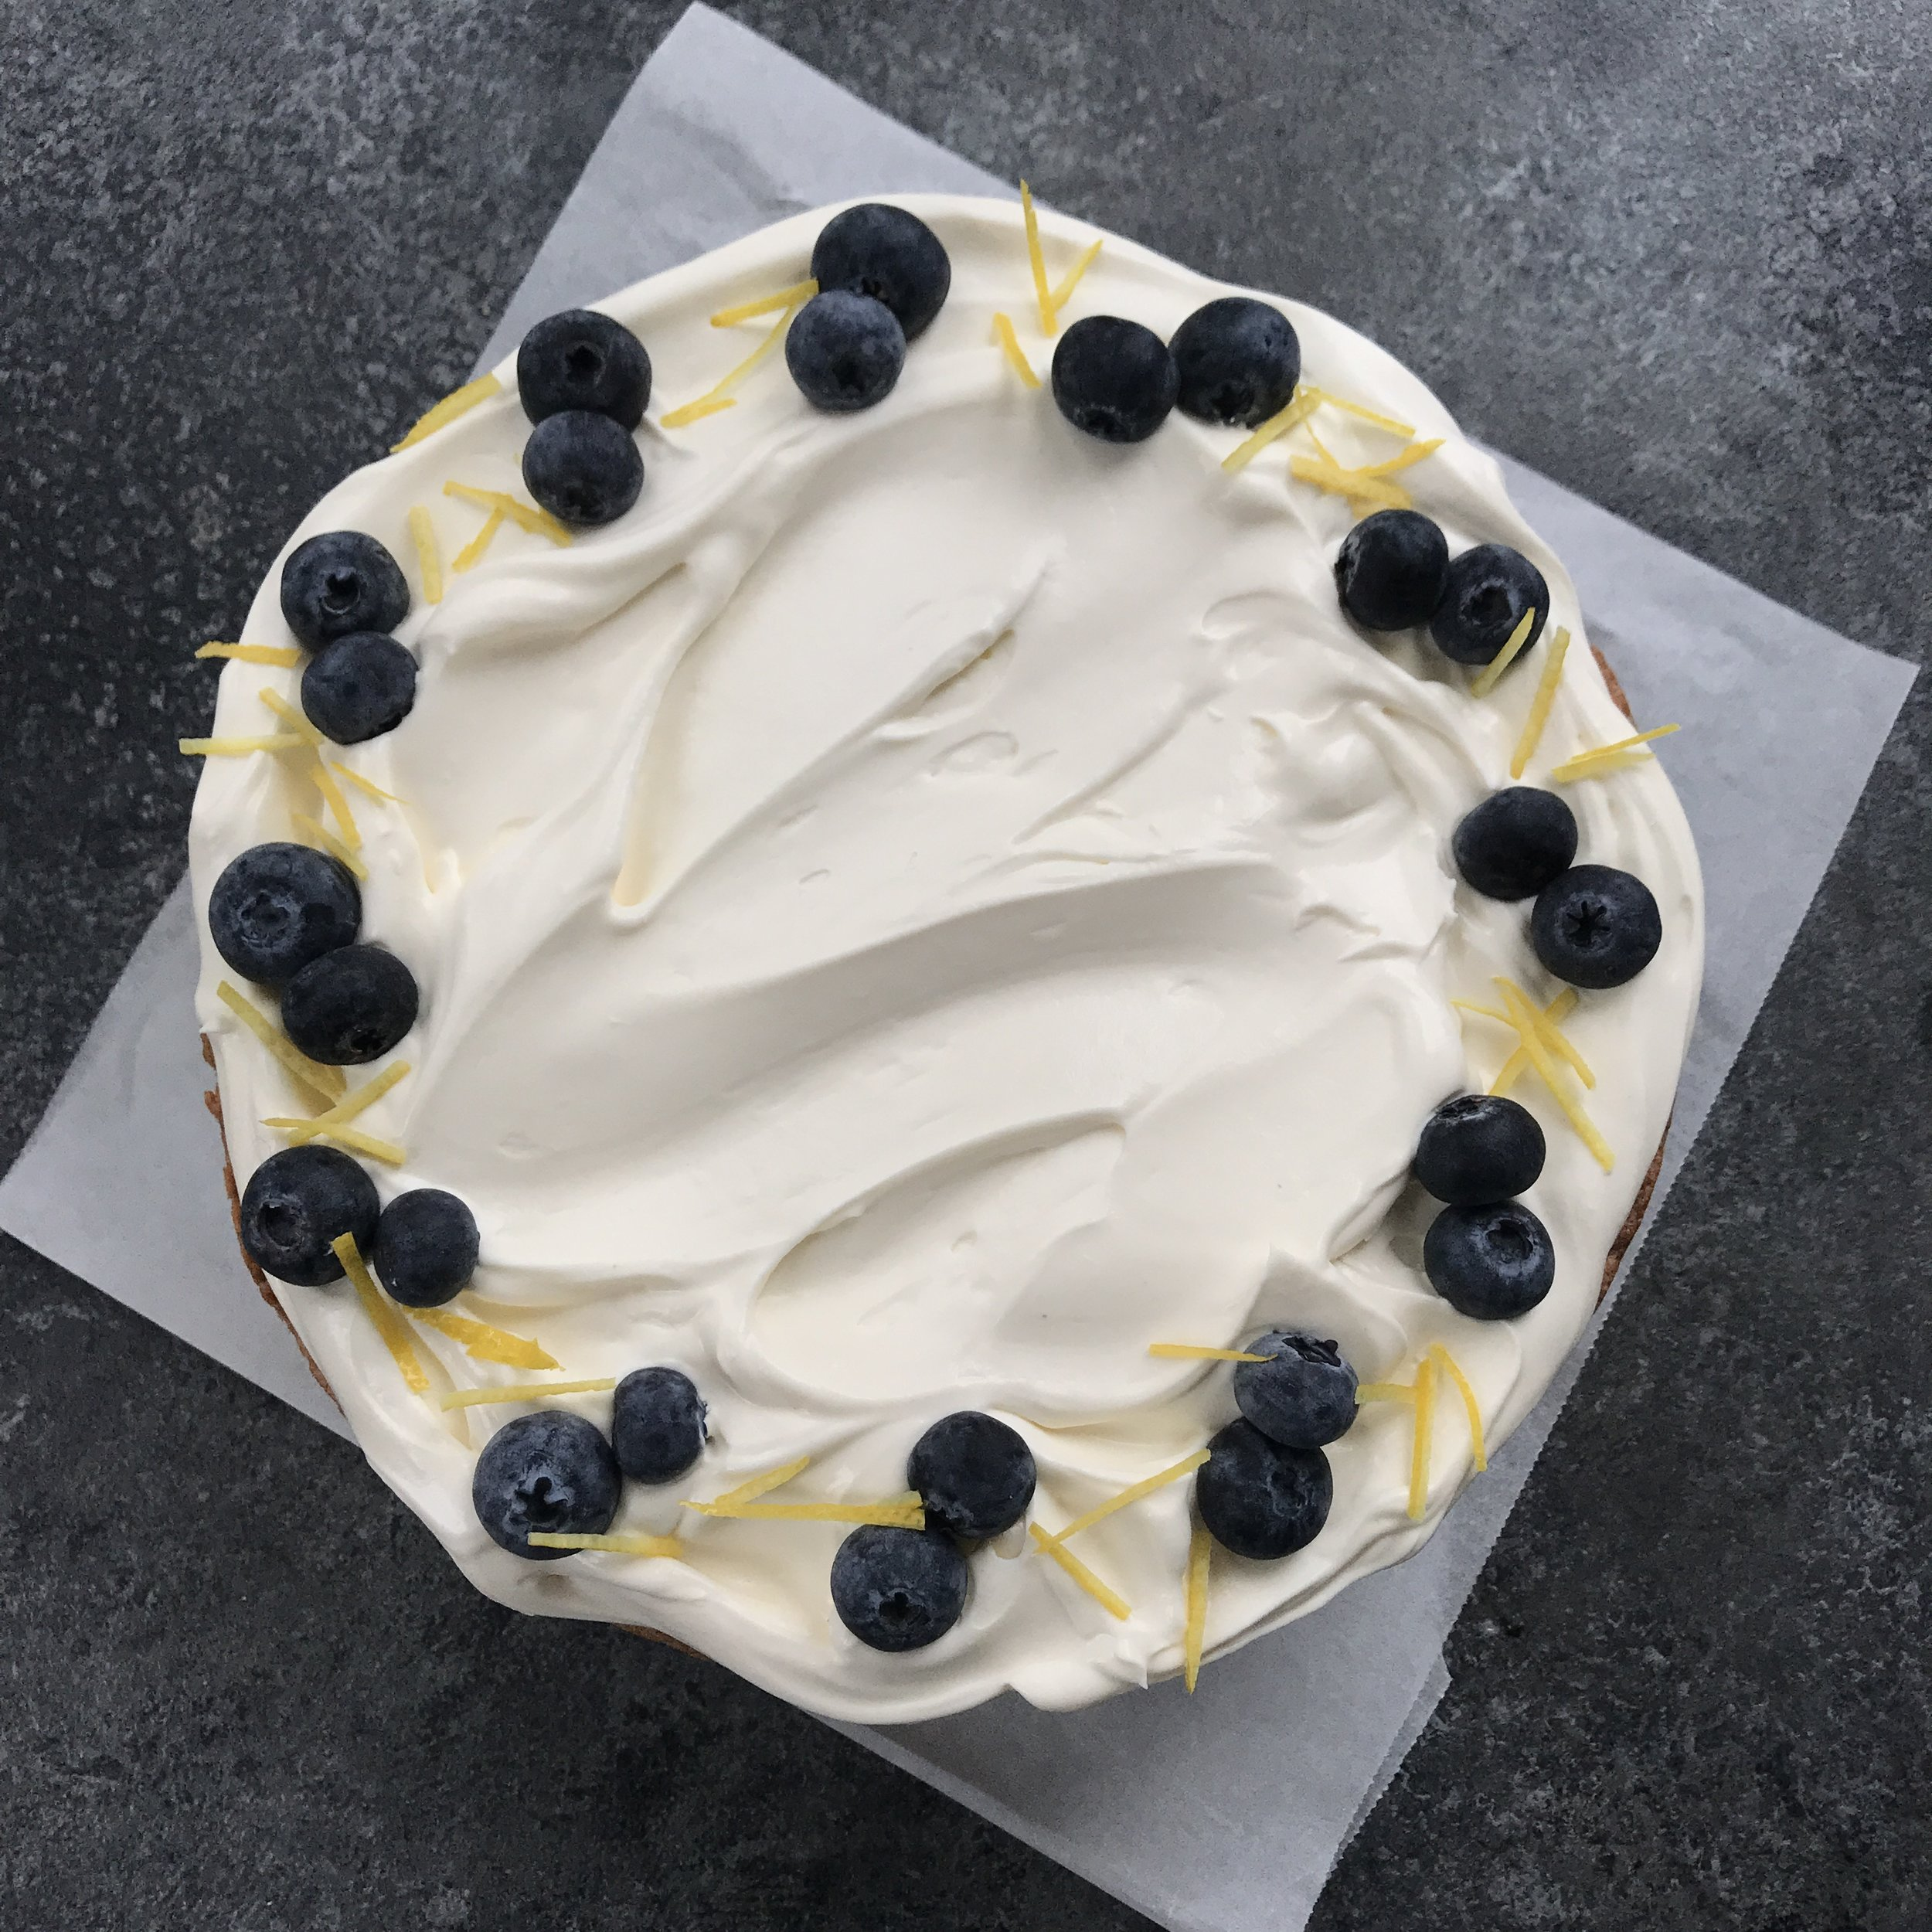 Lemon & Blueberry Classic Cake  £40.00